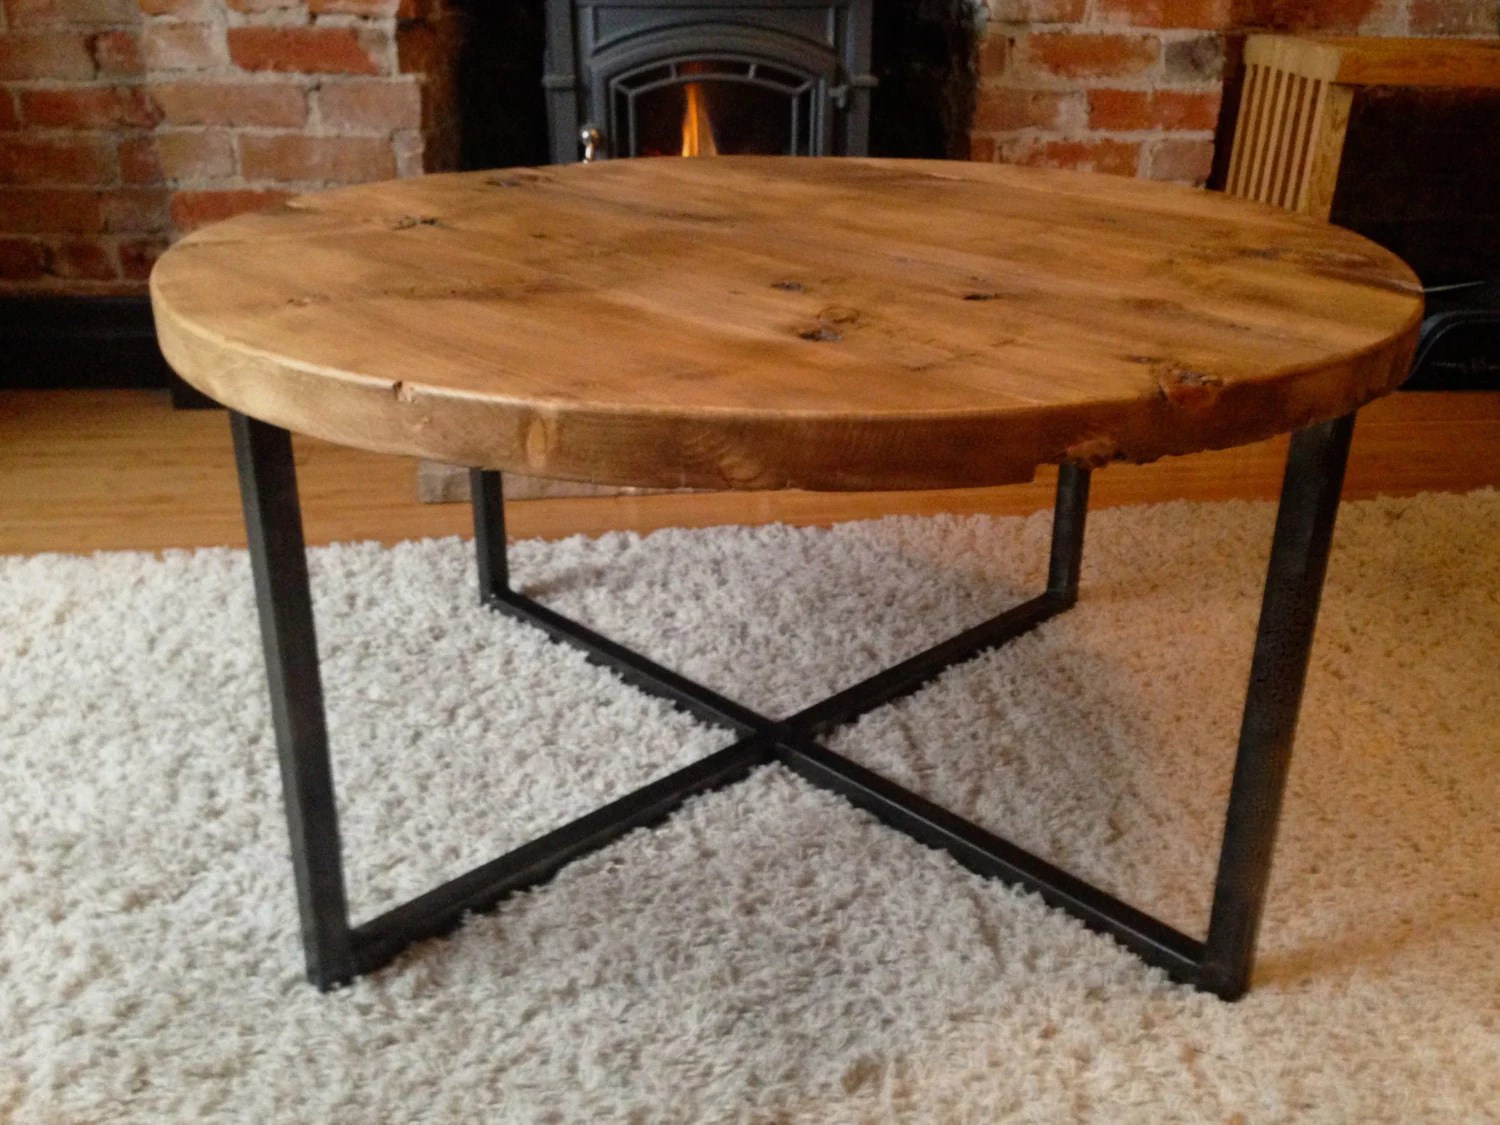 Reclaimed Barn Wood Round Coffee Table With Metal Base